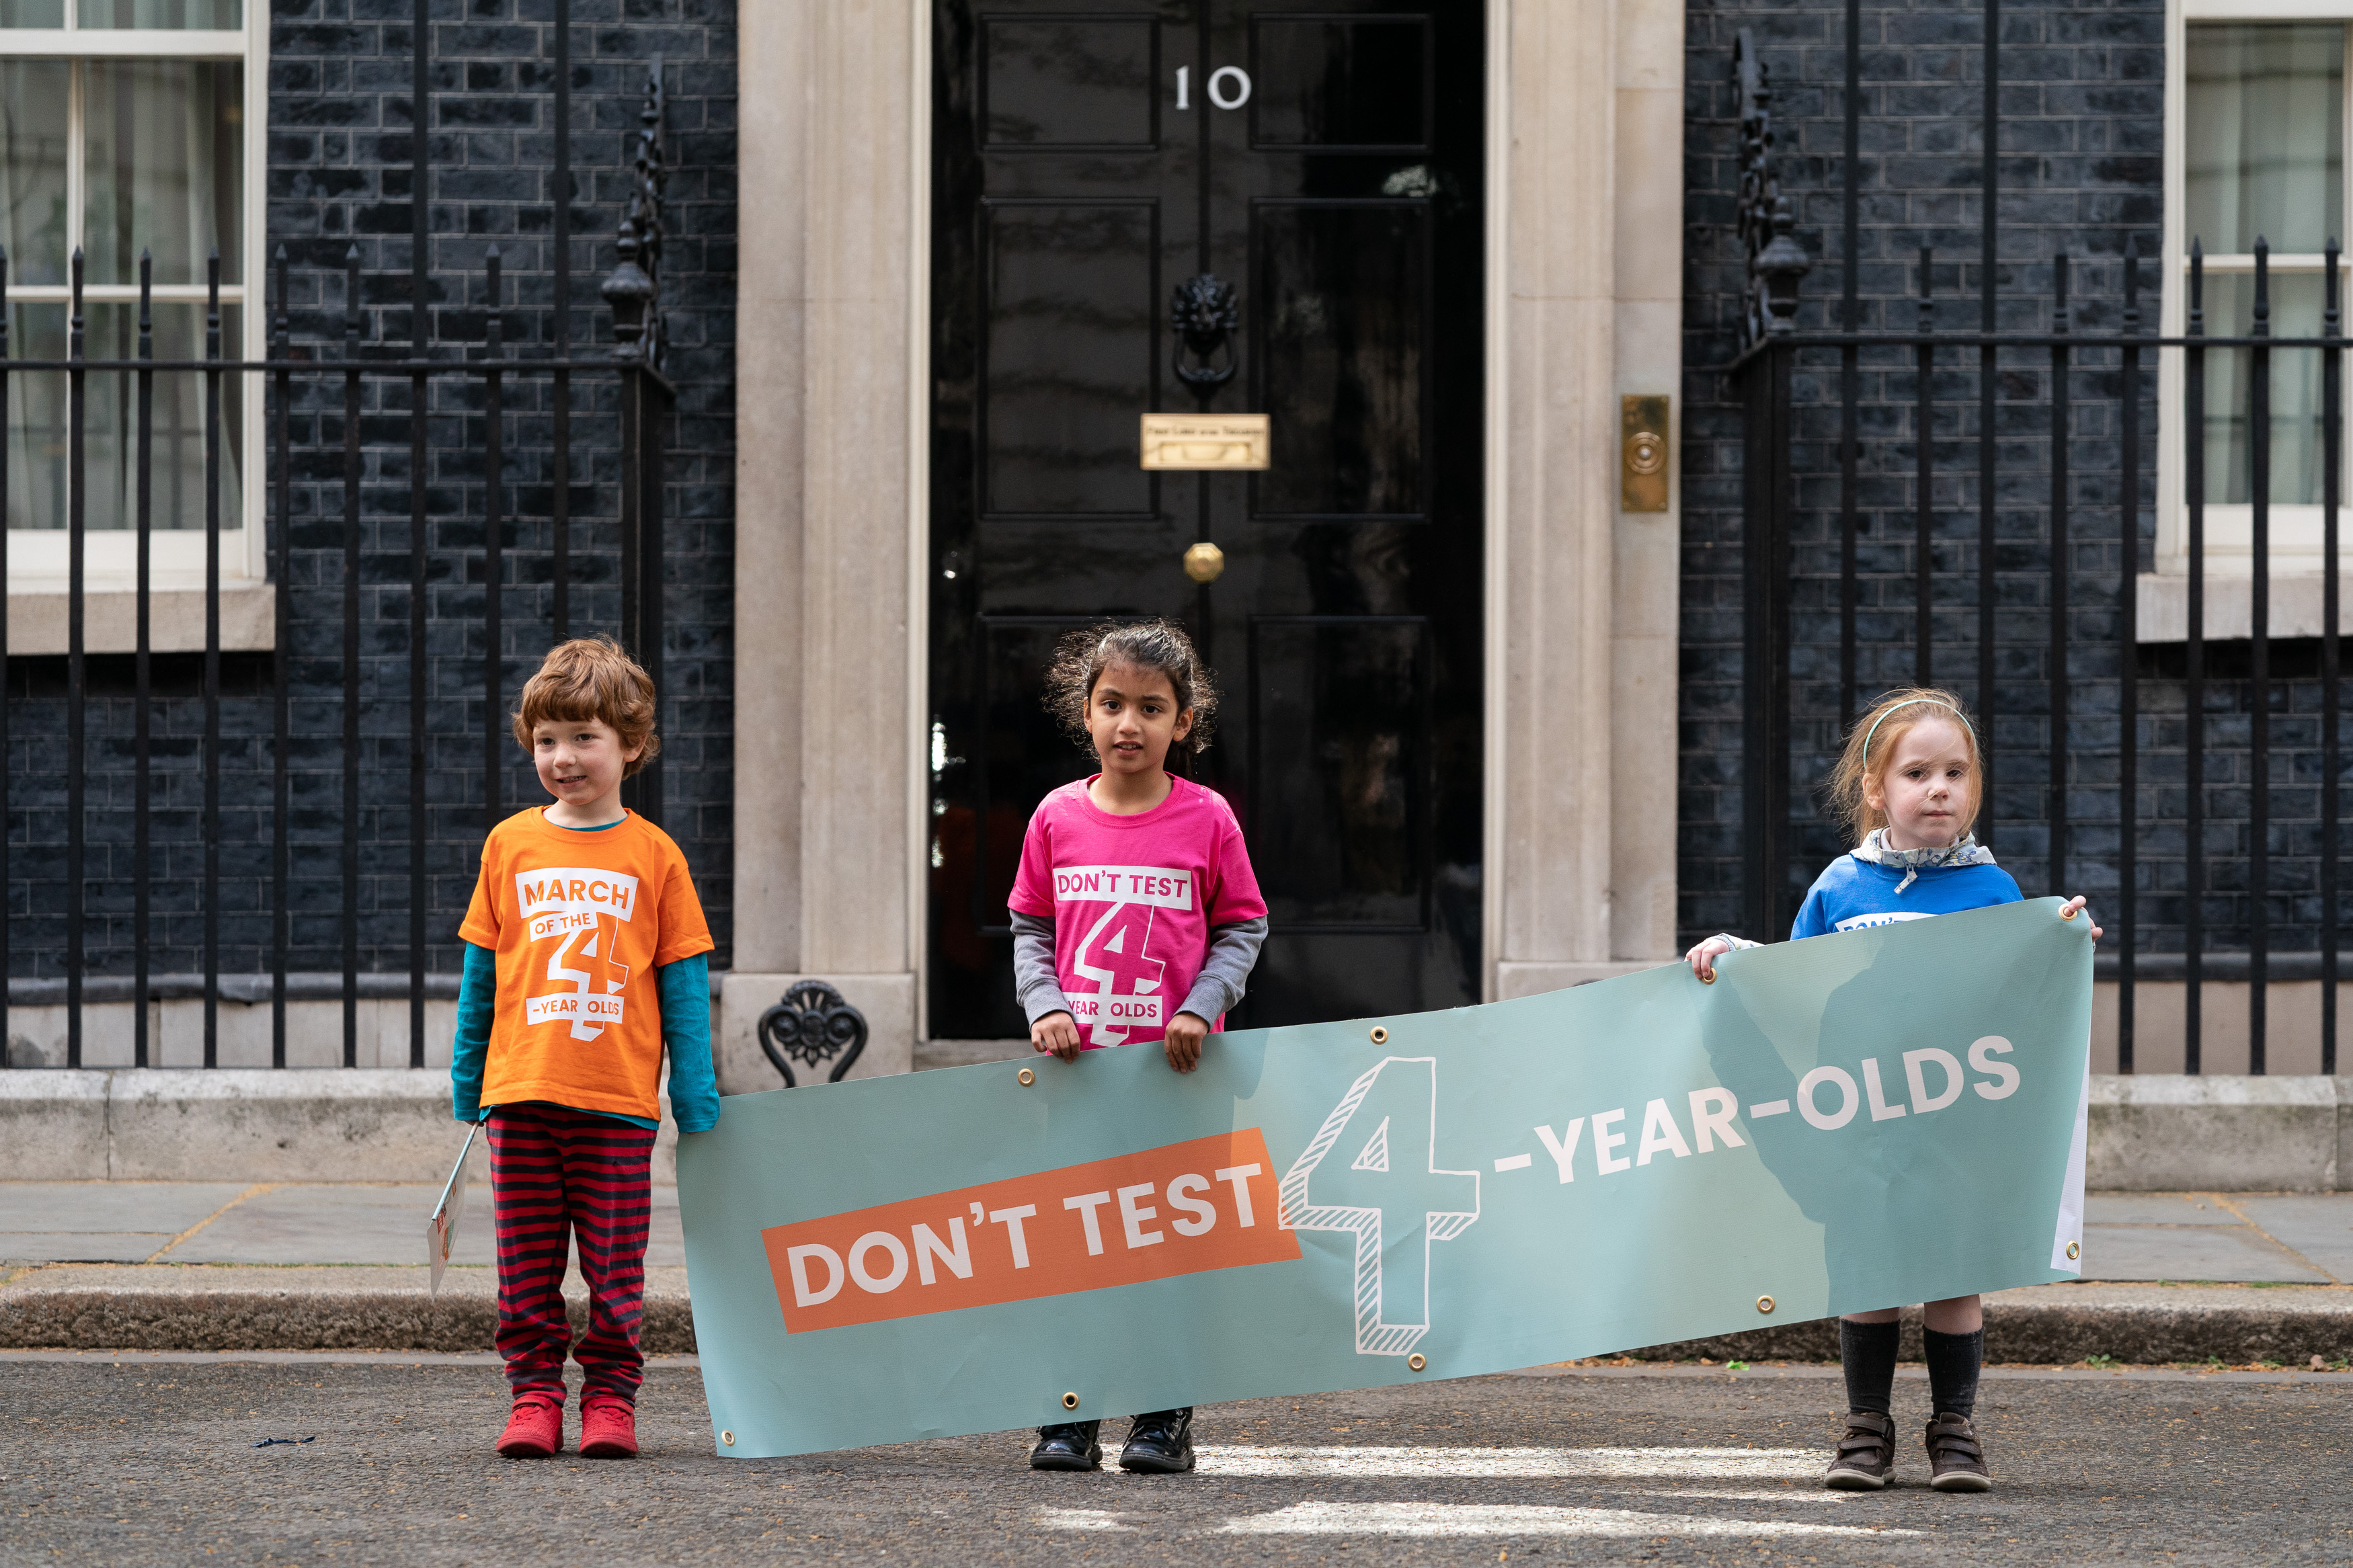 Parents say no to testing four-year-olds